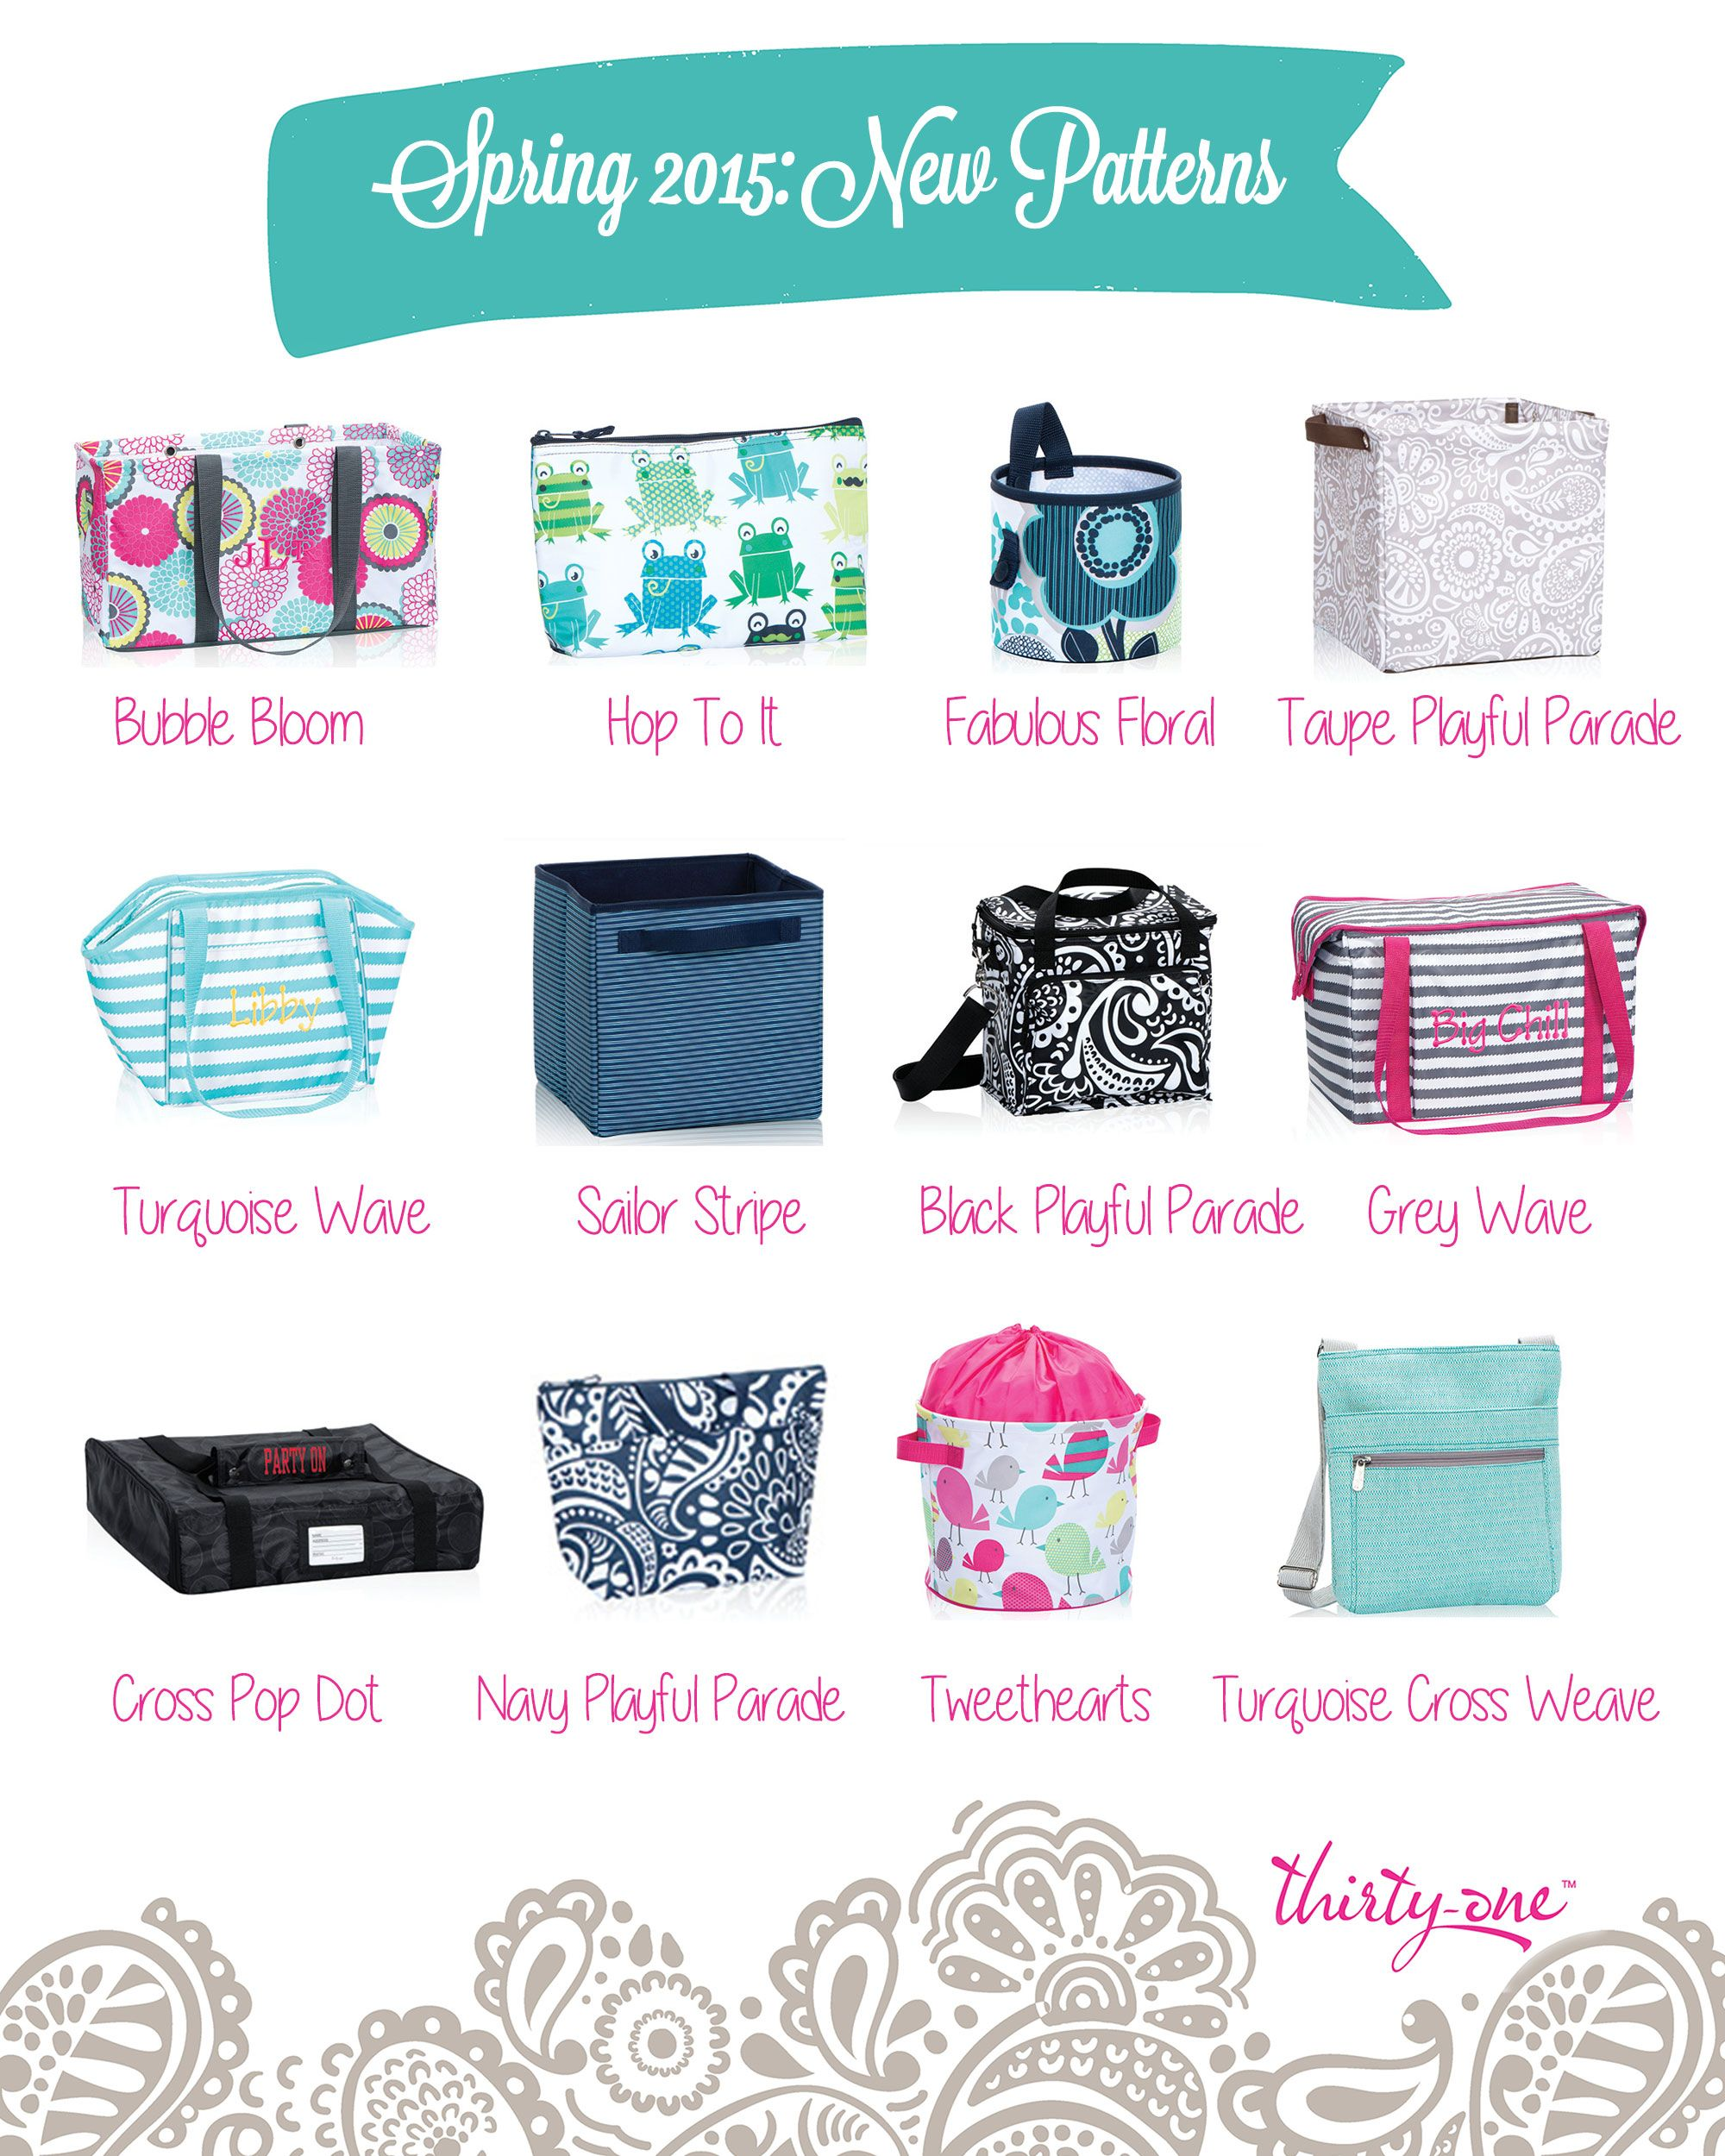 Thirty one november customer special 2014 - The New Thirty One Spring Summer 2015 Patterns I M Loving Me Some